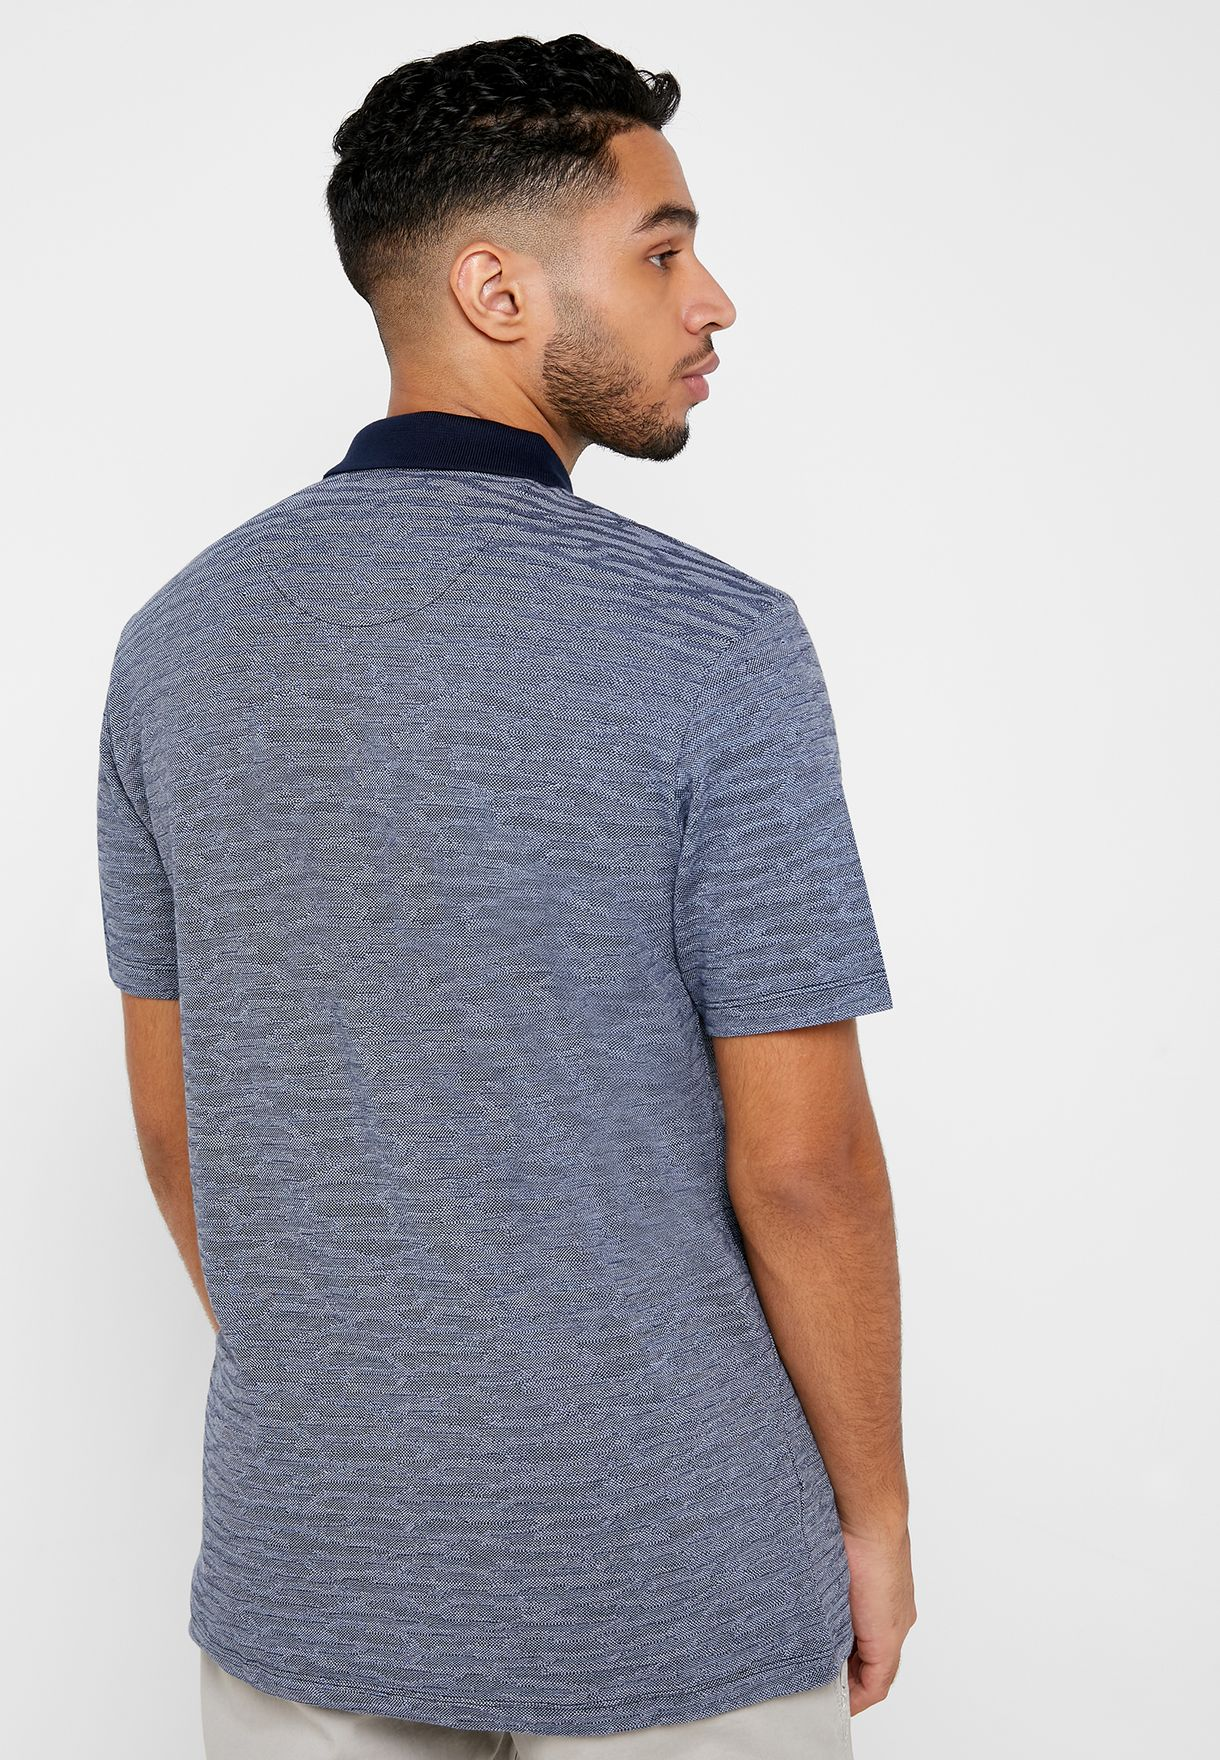 Reserved Textured Regular Fit Polo - Fashion